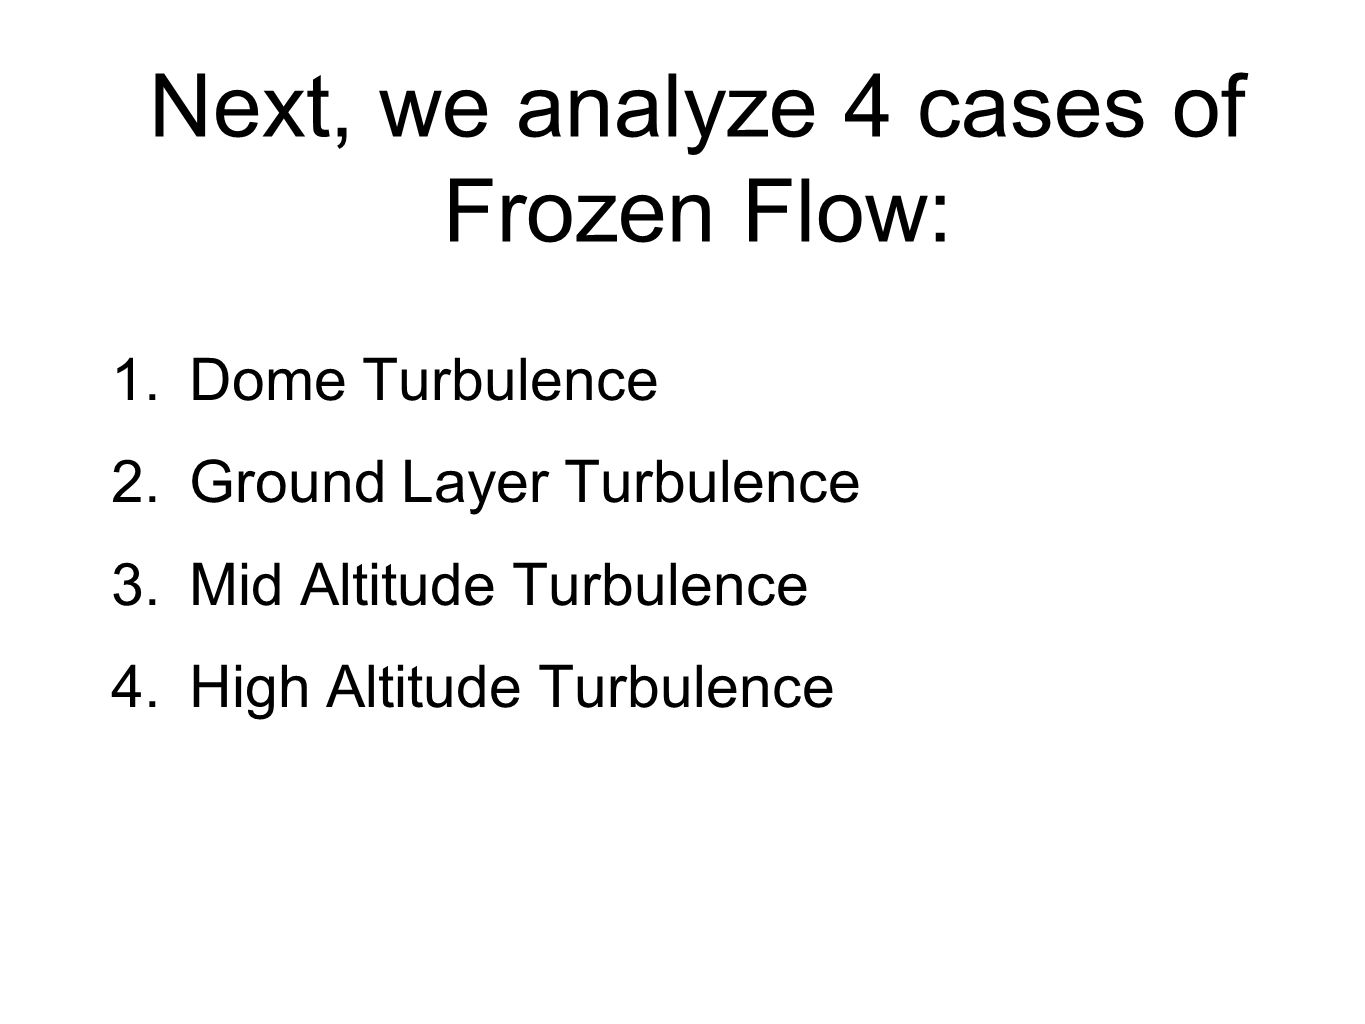 Next, we analyze 4 cases of Frozen Flow: 1.Dome Turbulence 2.Ground Layer Turbulence 3.Mid Altitude Turbulence 4.High Altitude Turbulence